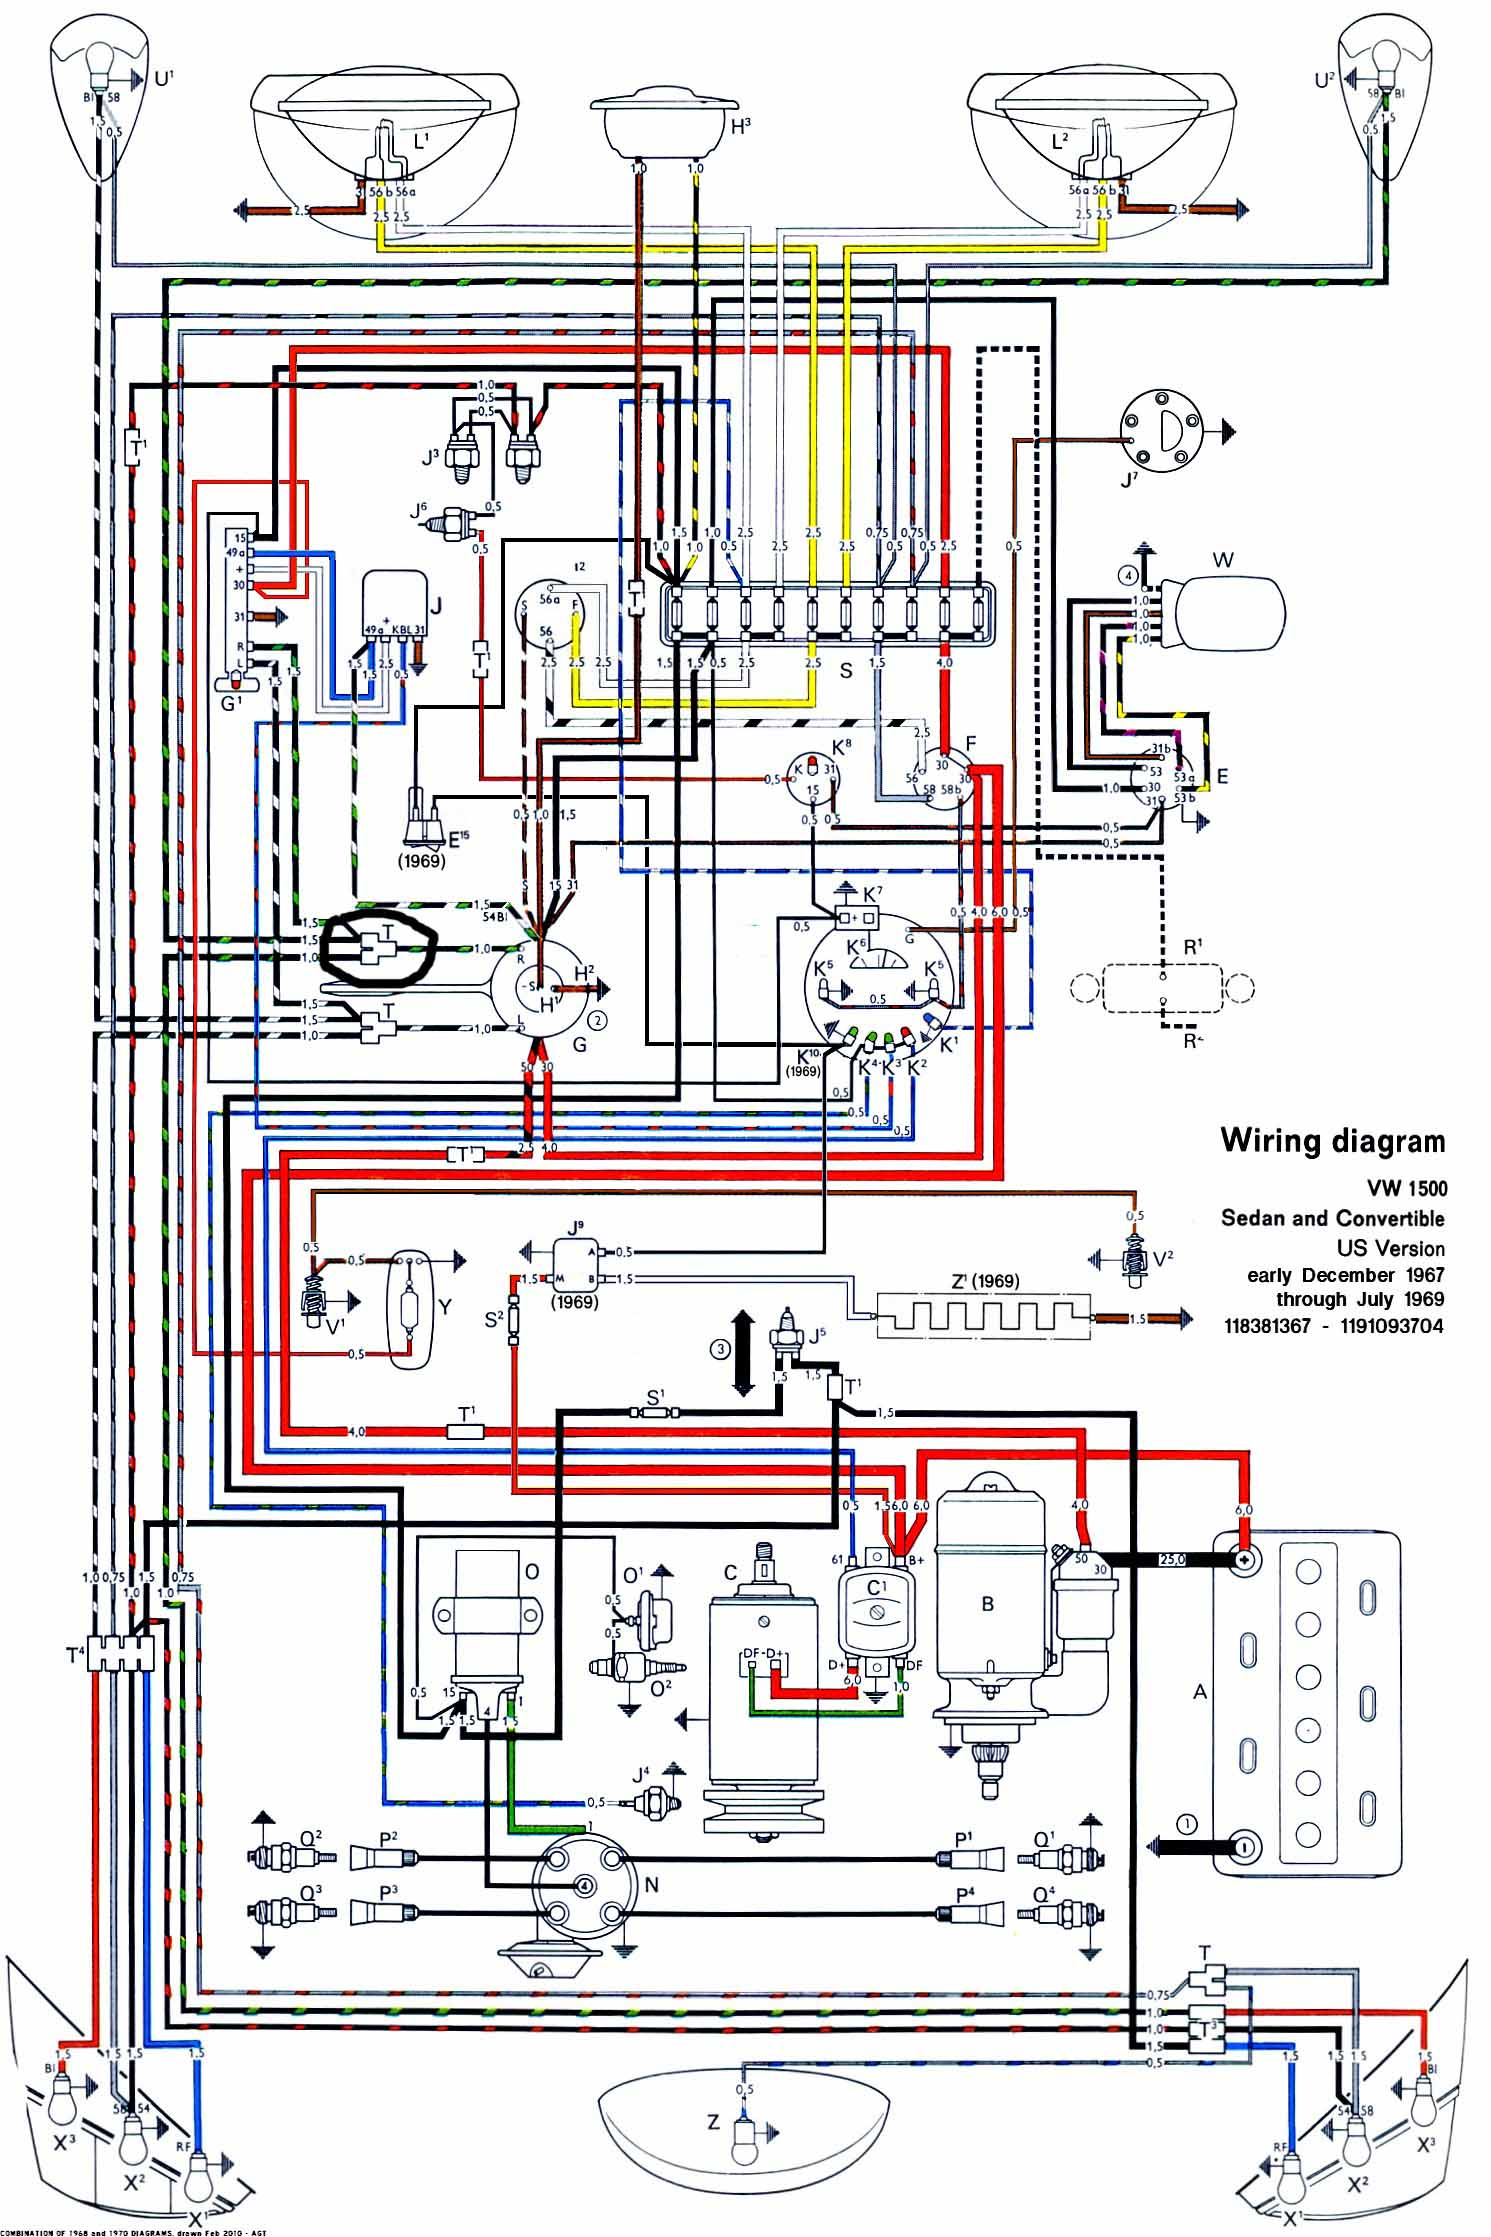 Vw Bug Wiring Diagram Experience Of 1965 Beetle Thegoldenbugcom For 1971 The 1974 72